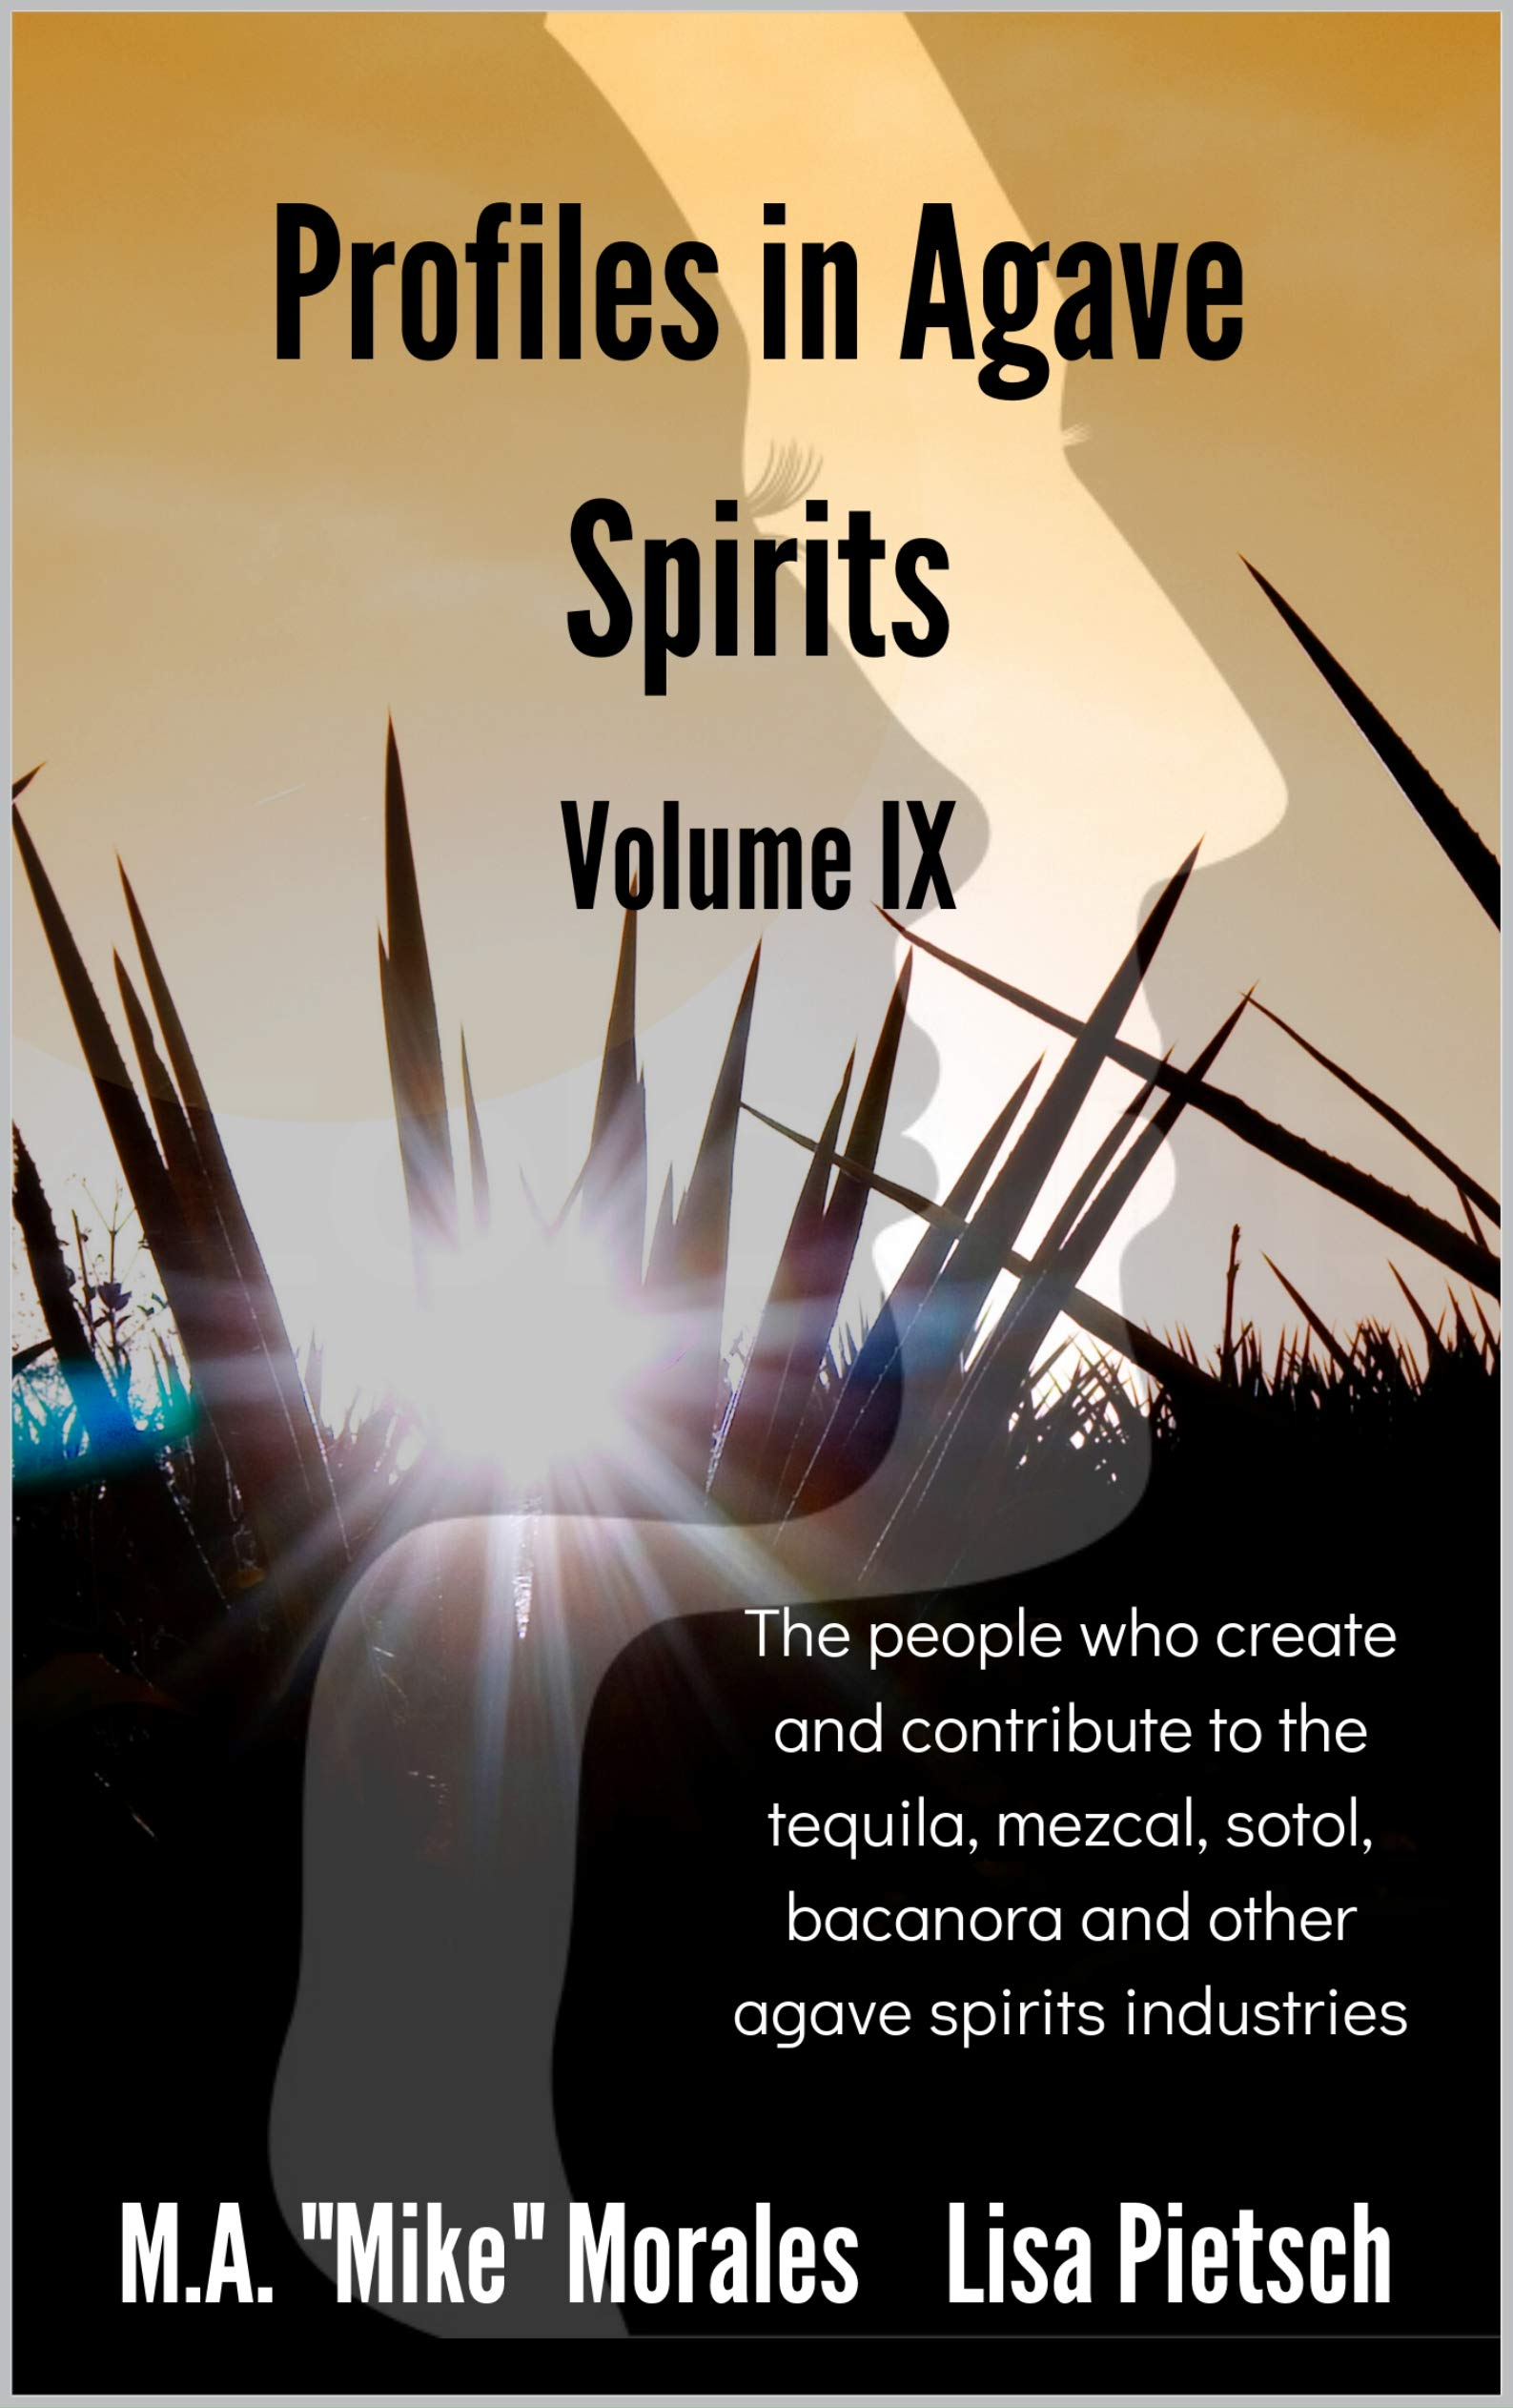 Profiles in Agave Spirits Volume 9: The people who create and contribute to the tequila, mezcal, sotol, bacanora and other agave spirits industries (in both English & Spanish)